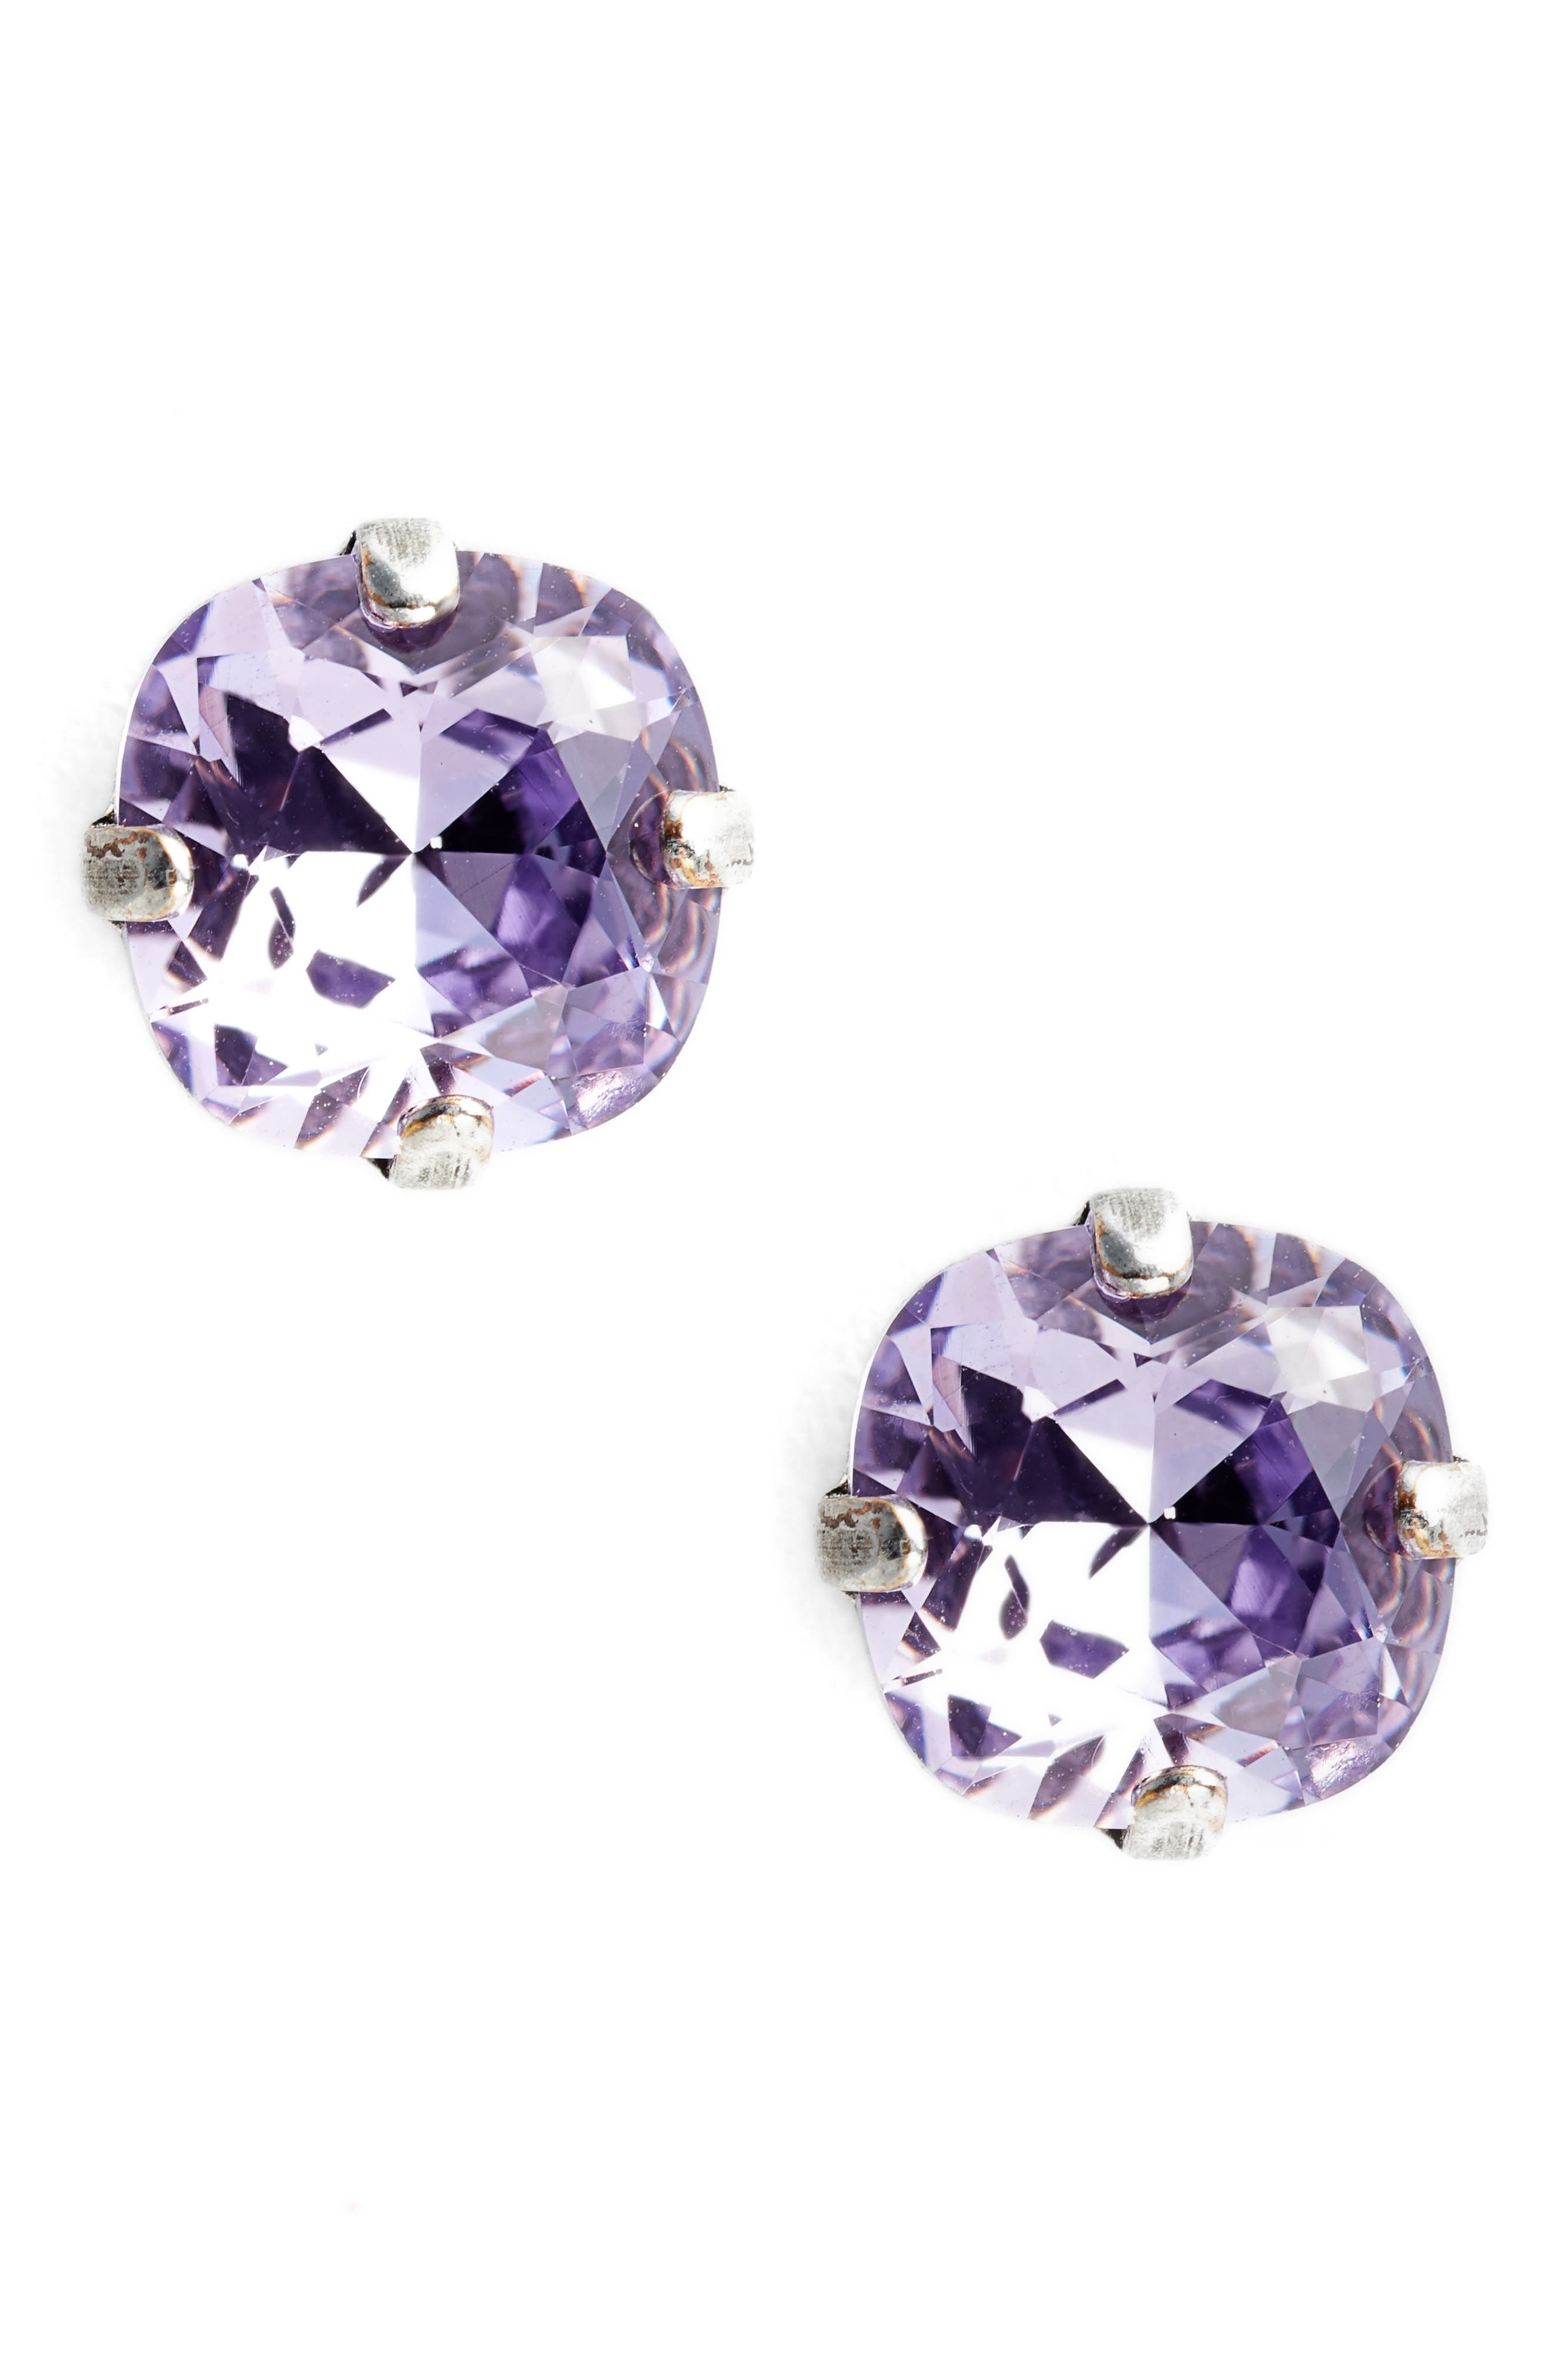 One & Only Crystal Earrings,                             Main thumbnail 1, color,                             500